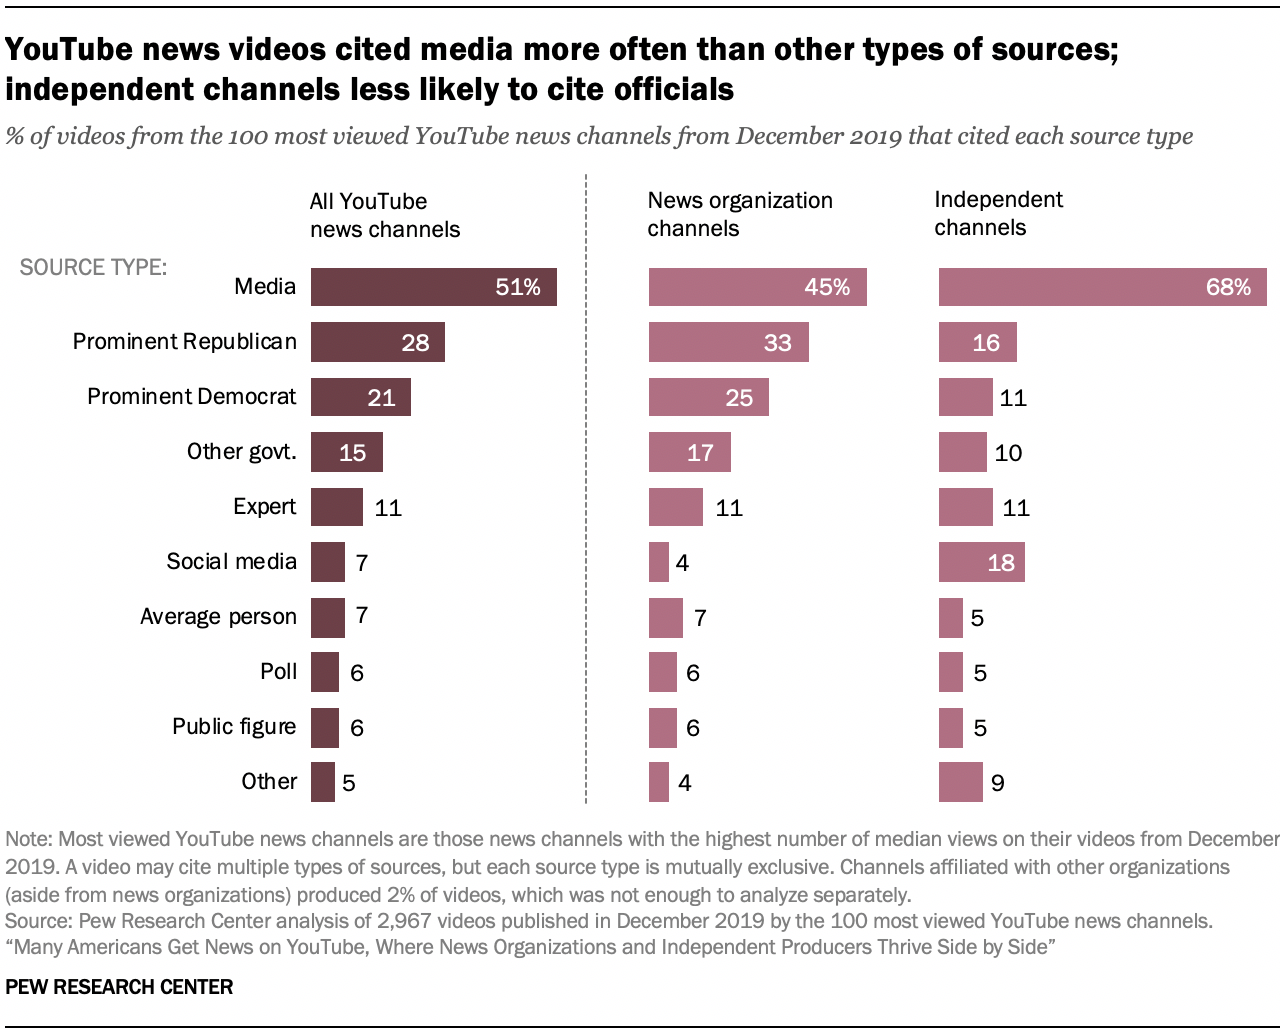 YouTube news videos cited media more often than other types of sources; independent channels less likely to cite officials